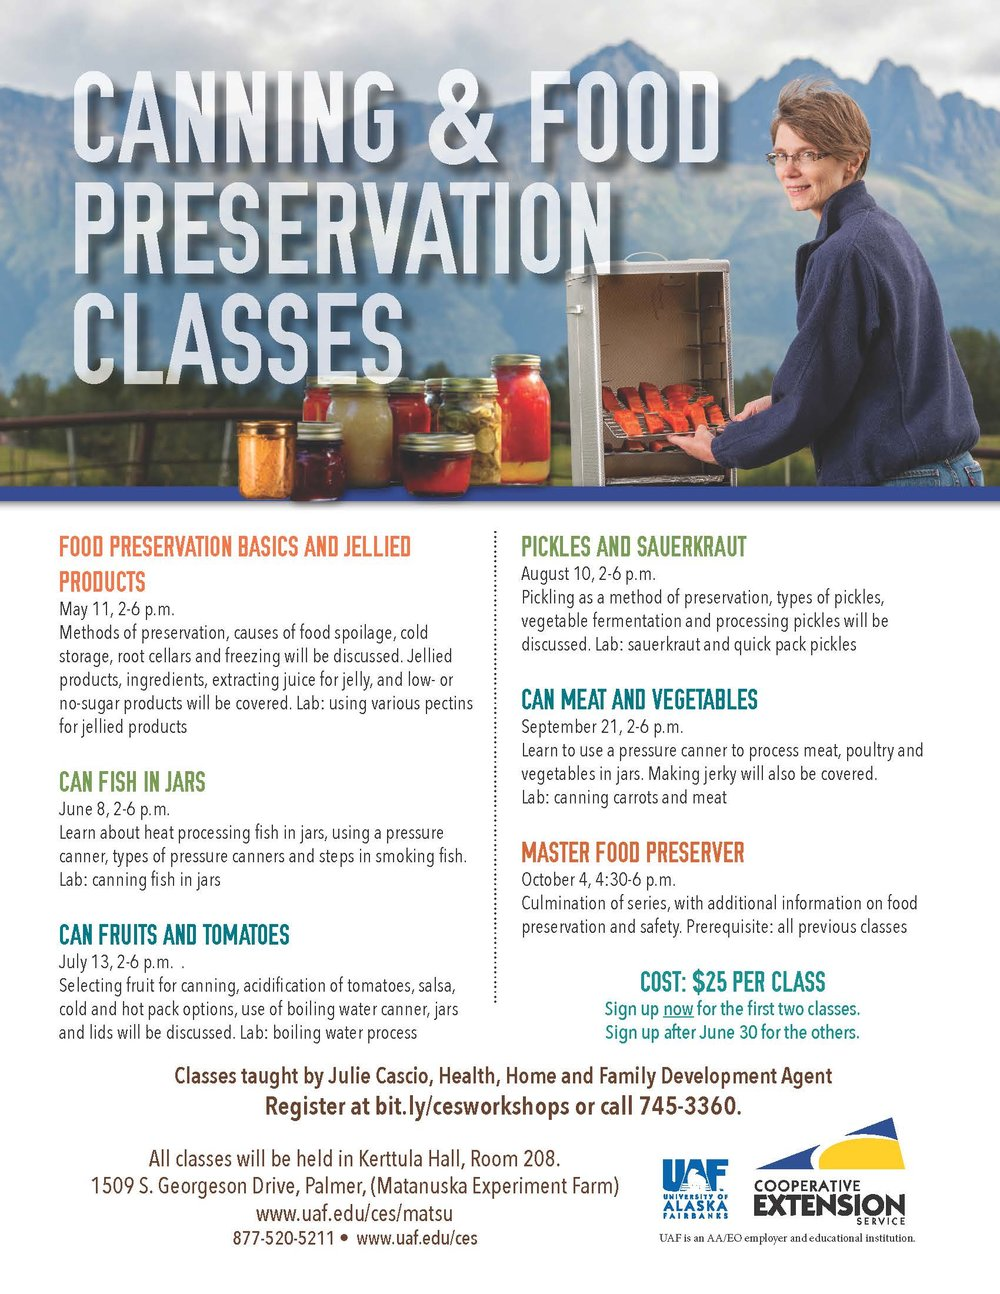 COMMUNITY - Cooperative Extension Is Here For You! 2 - Copy.jpg